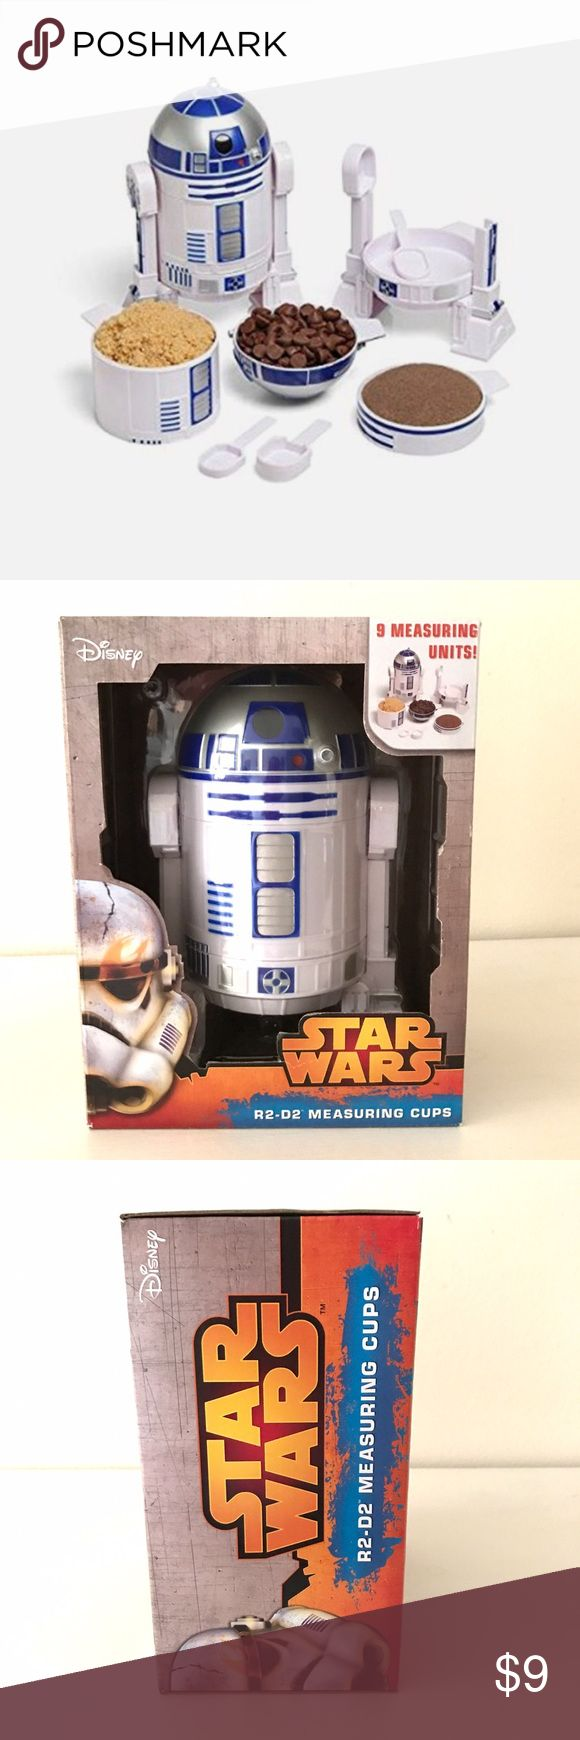 """Disney Star wars R2D2 Measuring cups Ok I know this isn't really """"posh"""" but it is fabulous so I figure why not try. This is brand new in box. Retailing for $30 on Amazon right now and trending hard on eBay! I think it would make a great gift Bundled with the brand new R2D2 sequined backpack I have listed, get my bundle discount, and save on shipping! I would keep this, however; I'm not a huge fan of Star Wars (I know, gasp!) Star Wars Other"""